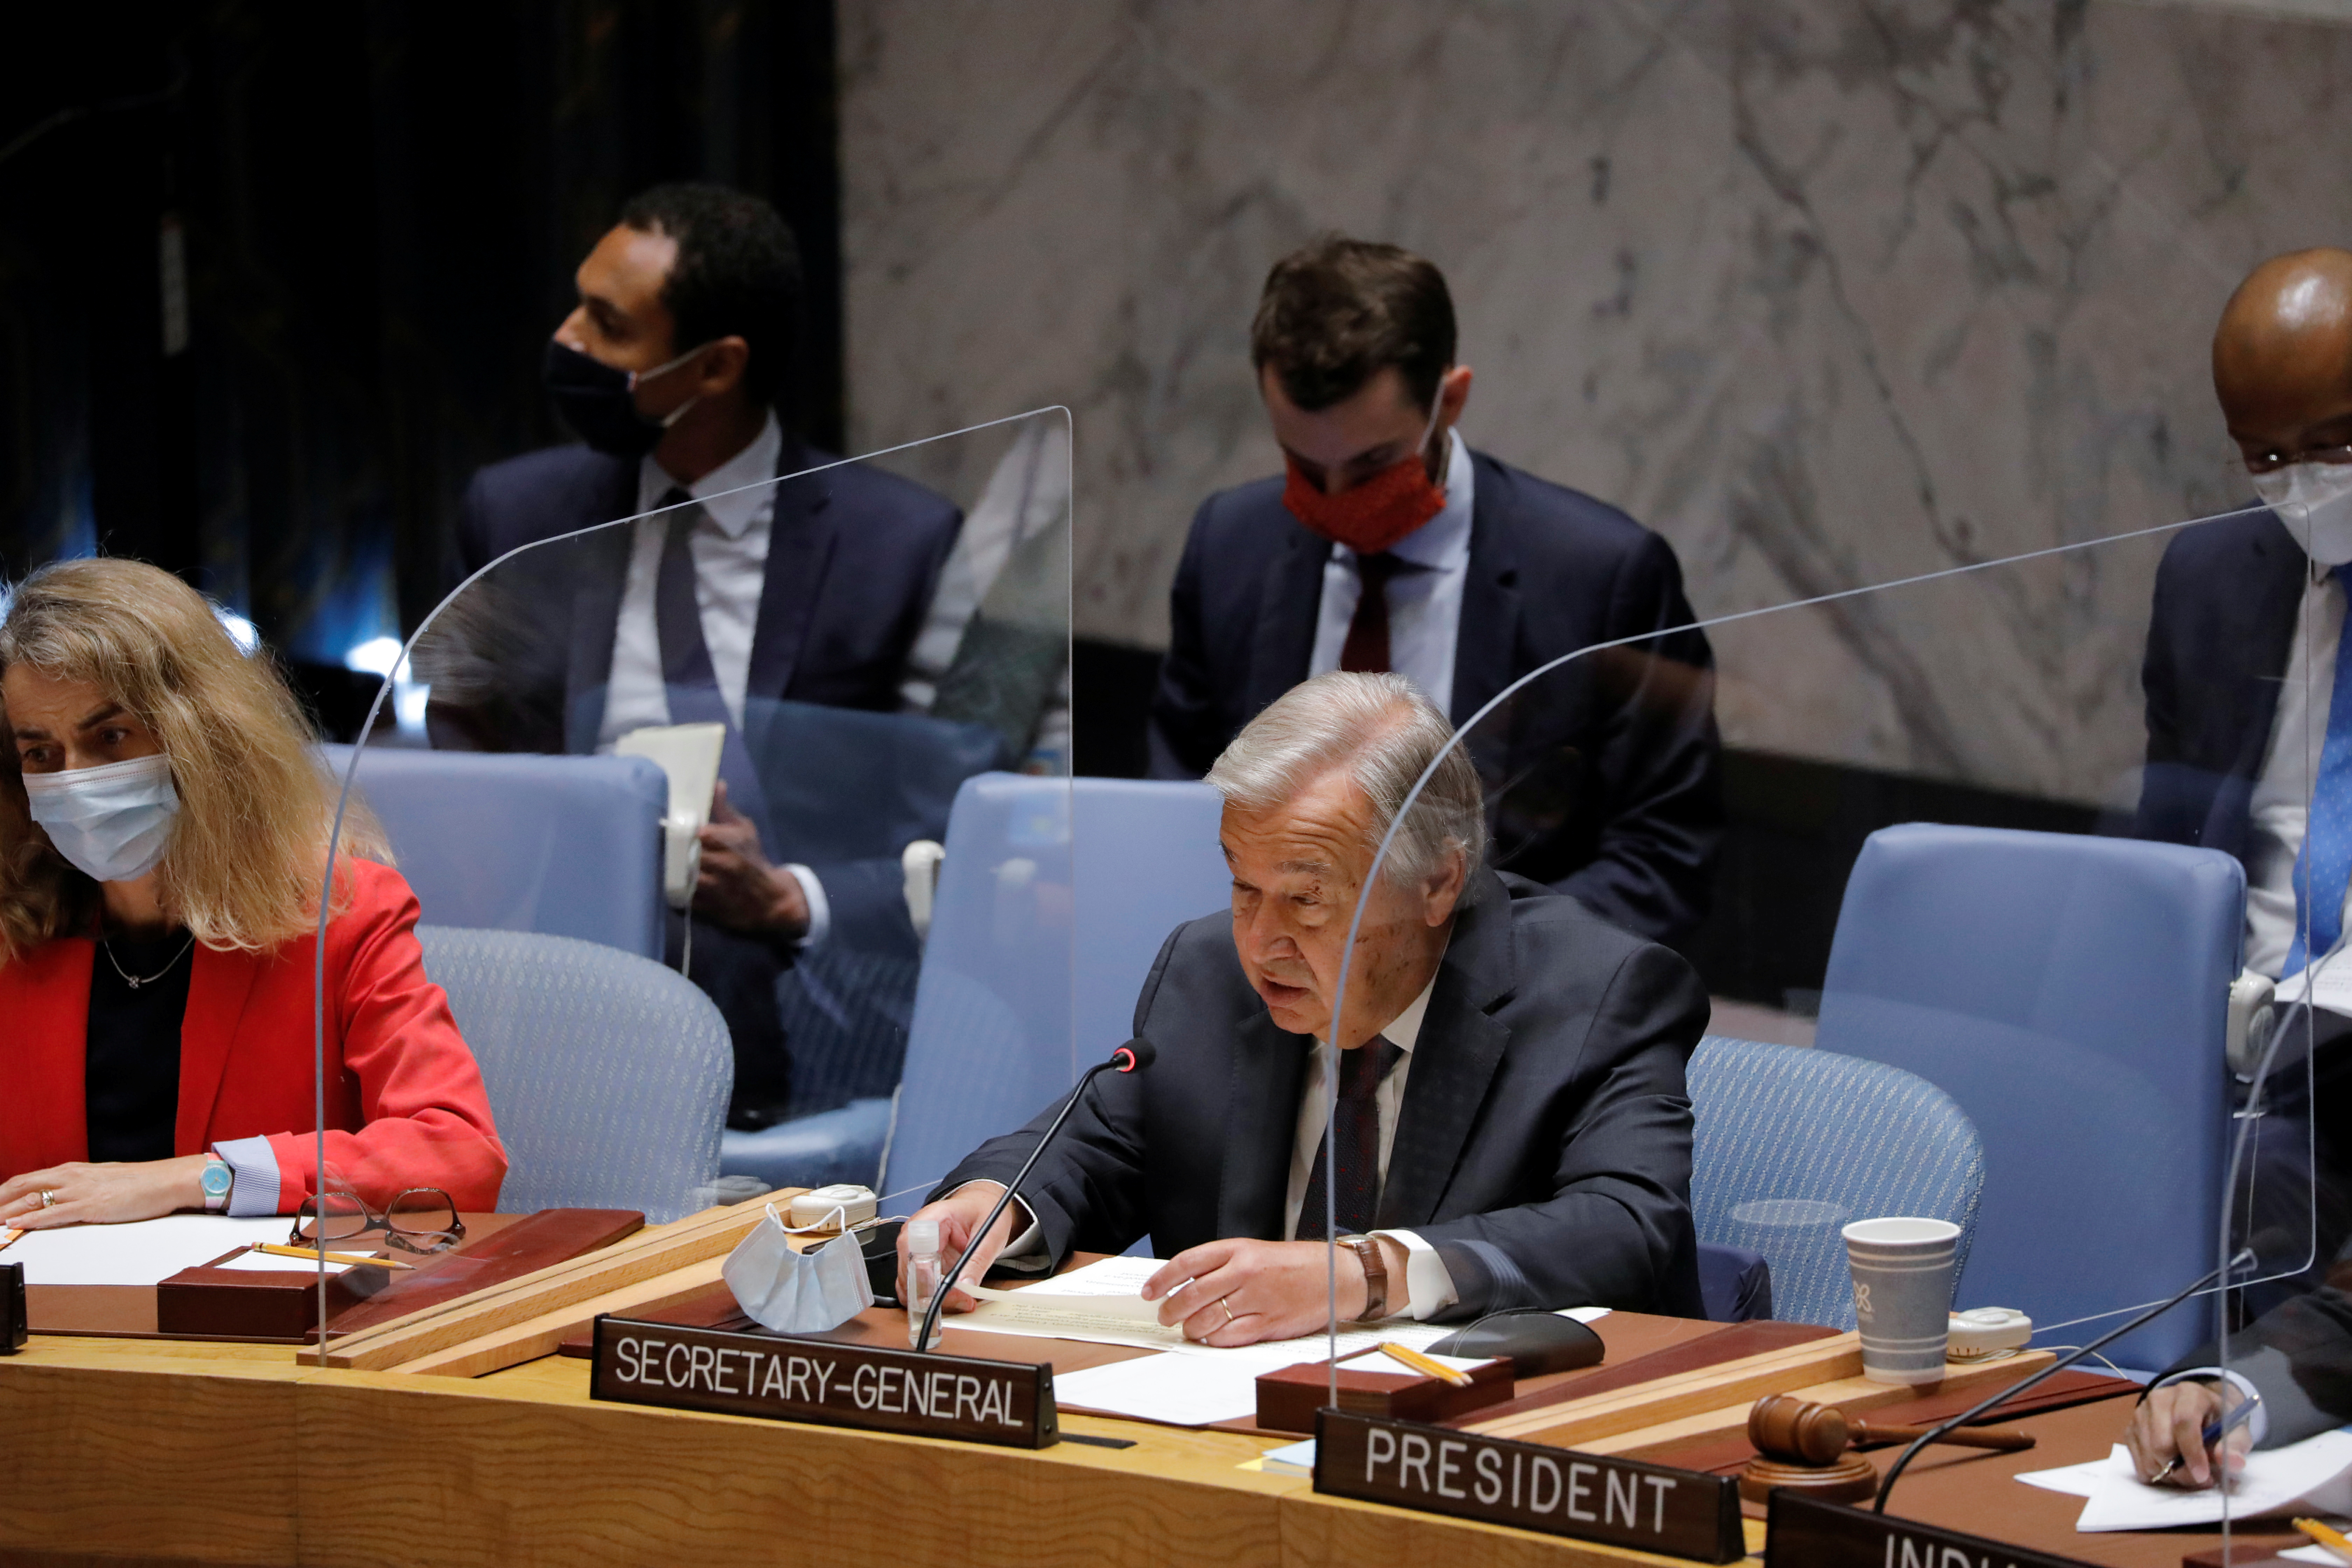 United Nations Secretary-General Antonio Guterres addresses the United Nations Security Council regarding the situation in Afghanistan at the United Nations in New York City, New York, U.S., August 16, 2021. REUTERS/Andrew Kelly